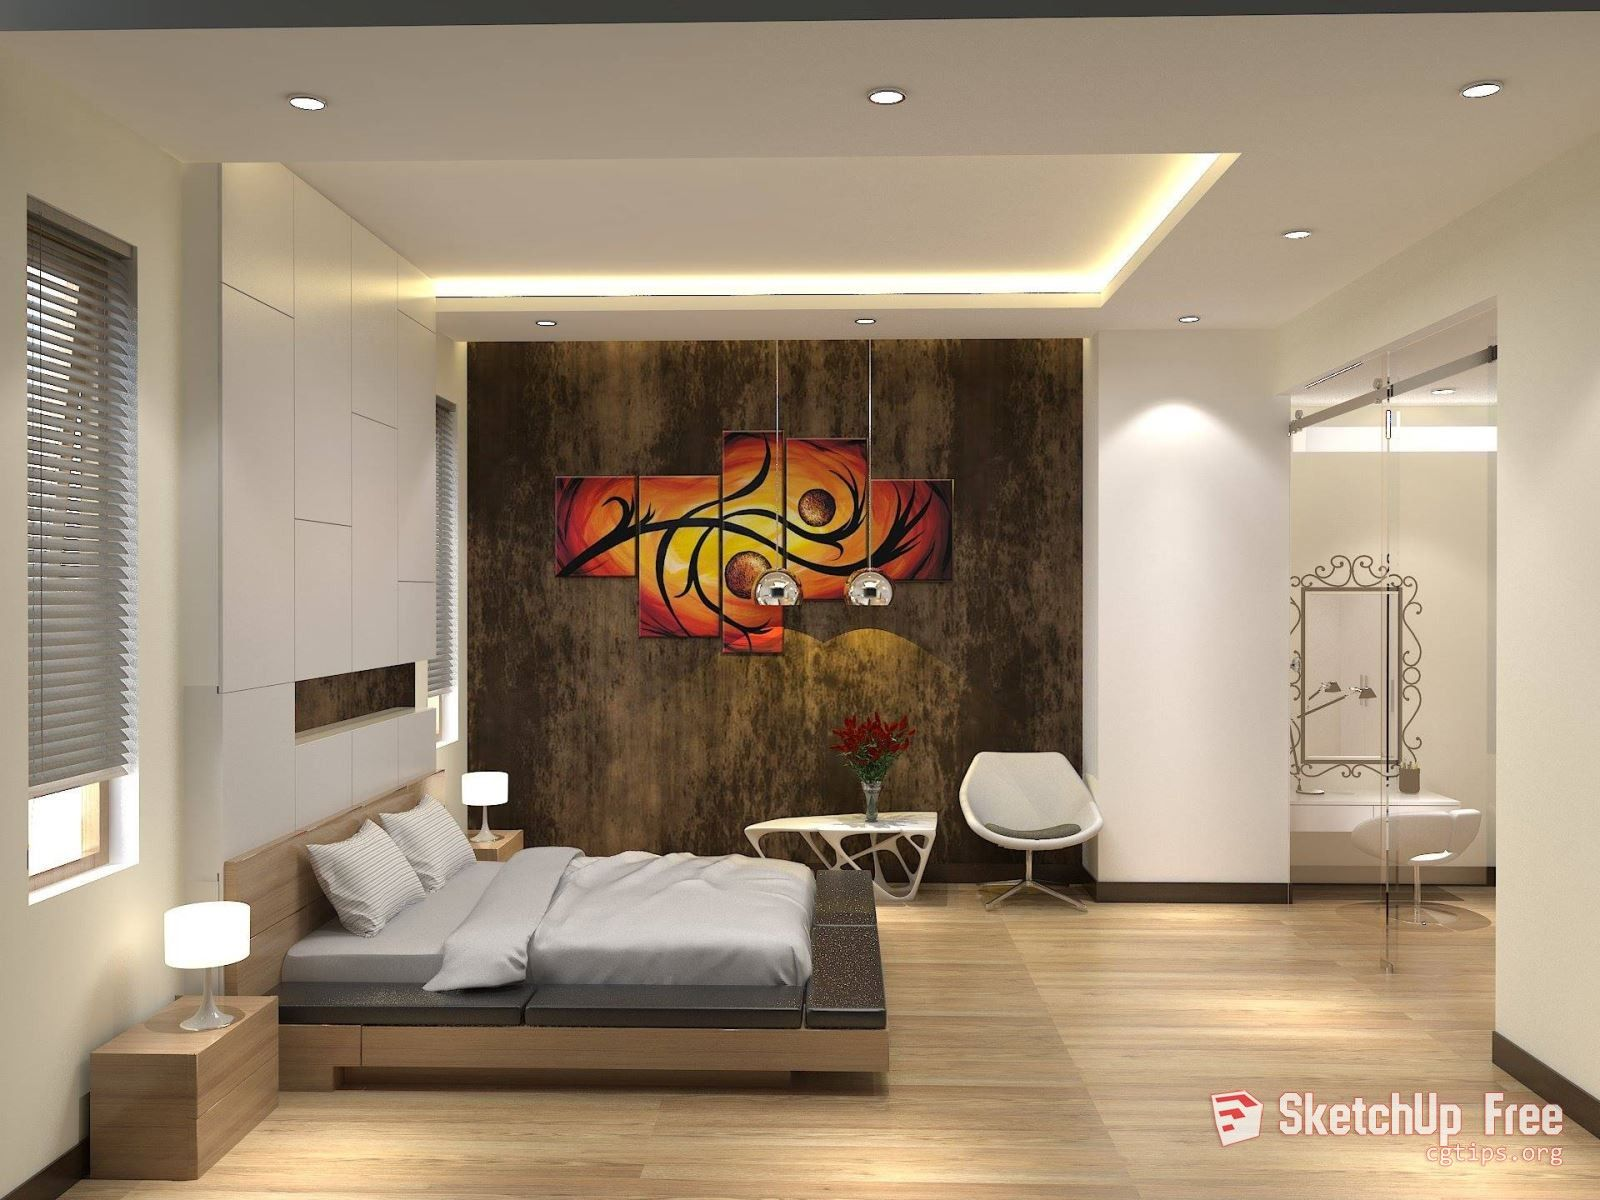 1486 Interior Bedroom Sketchup Model By Quoc Lam Free Download